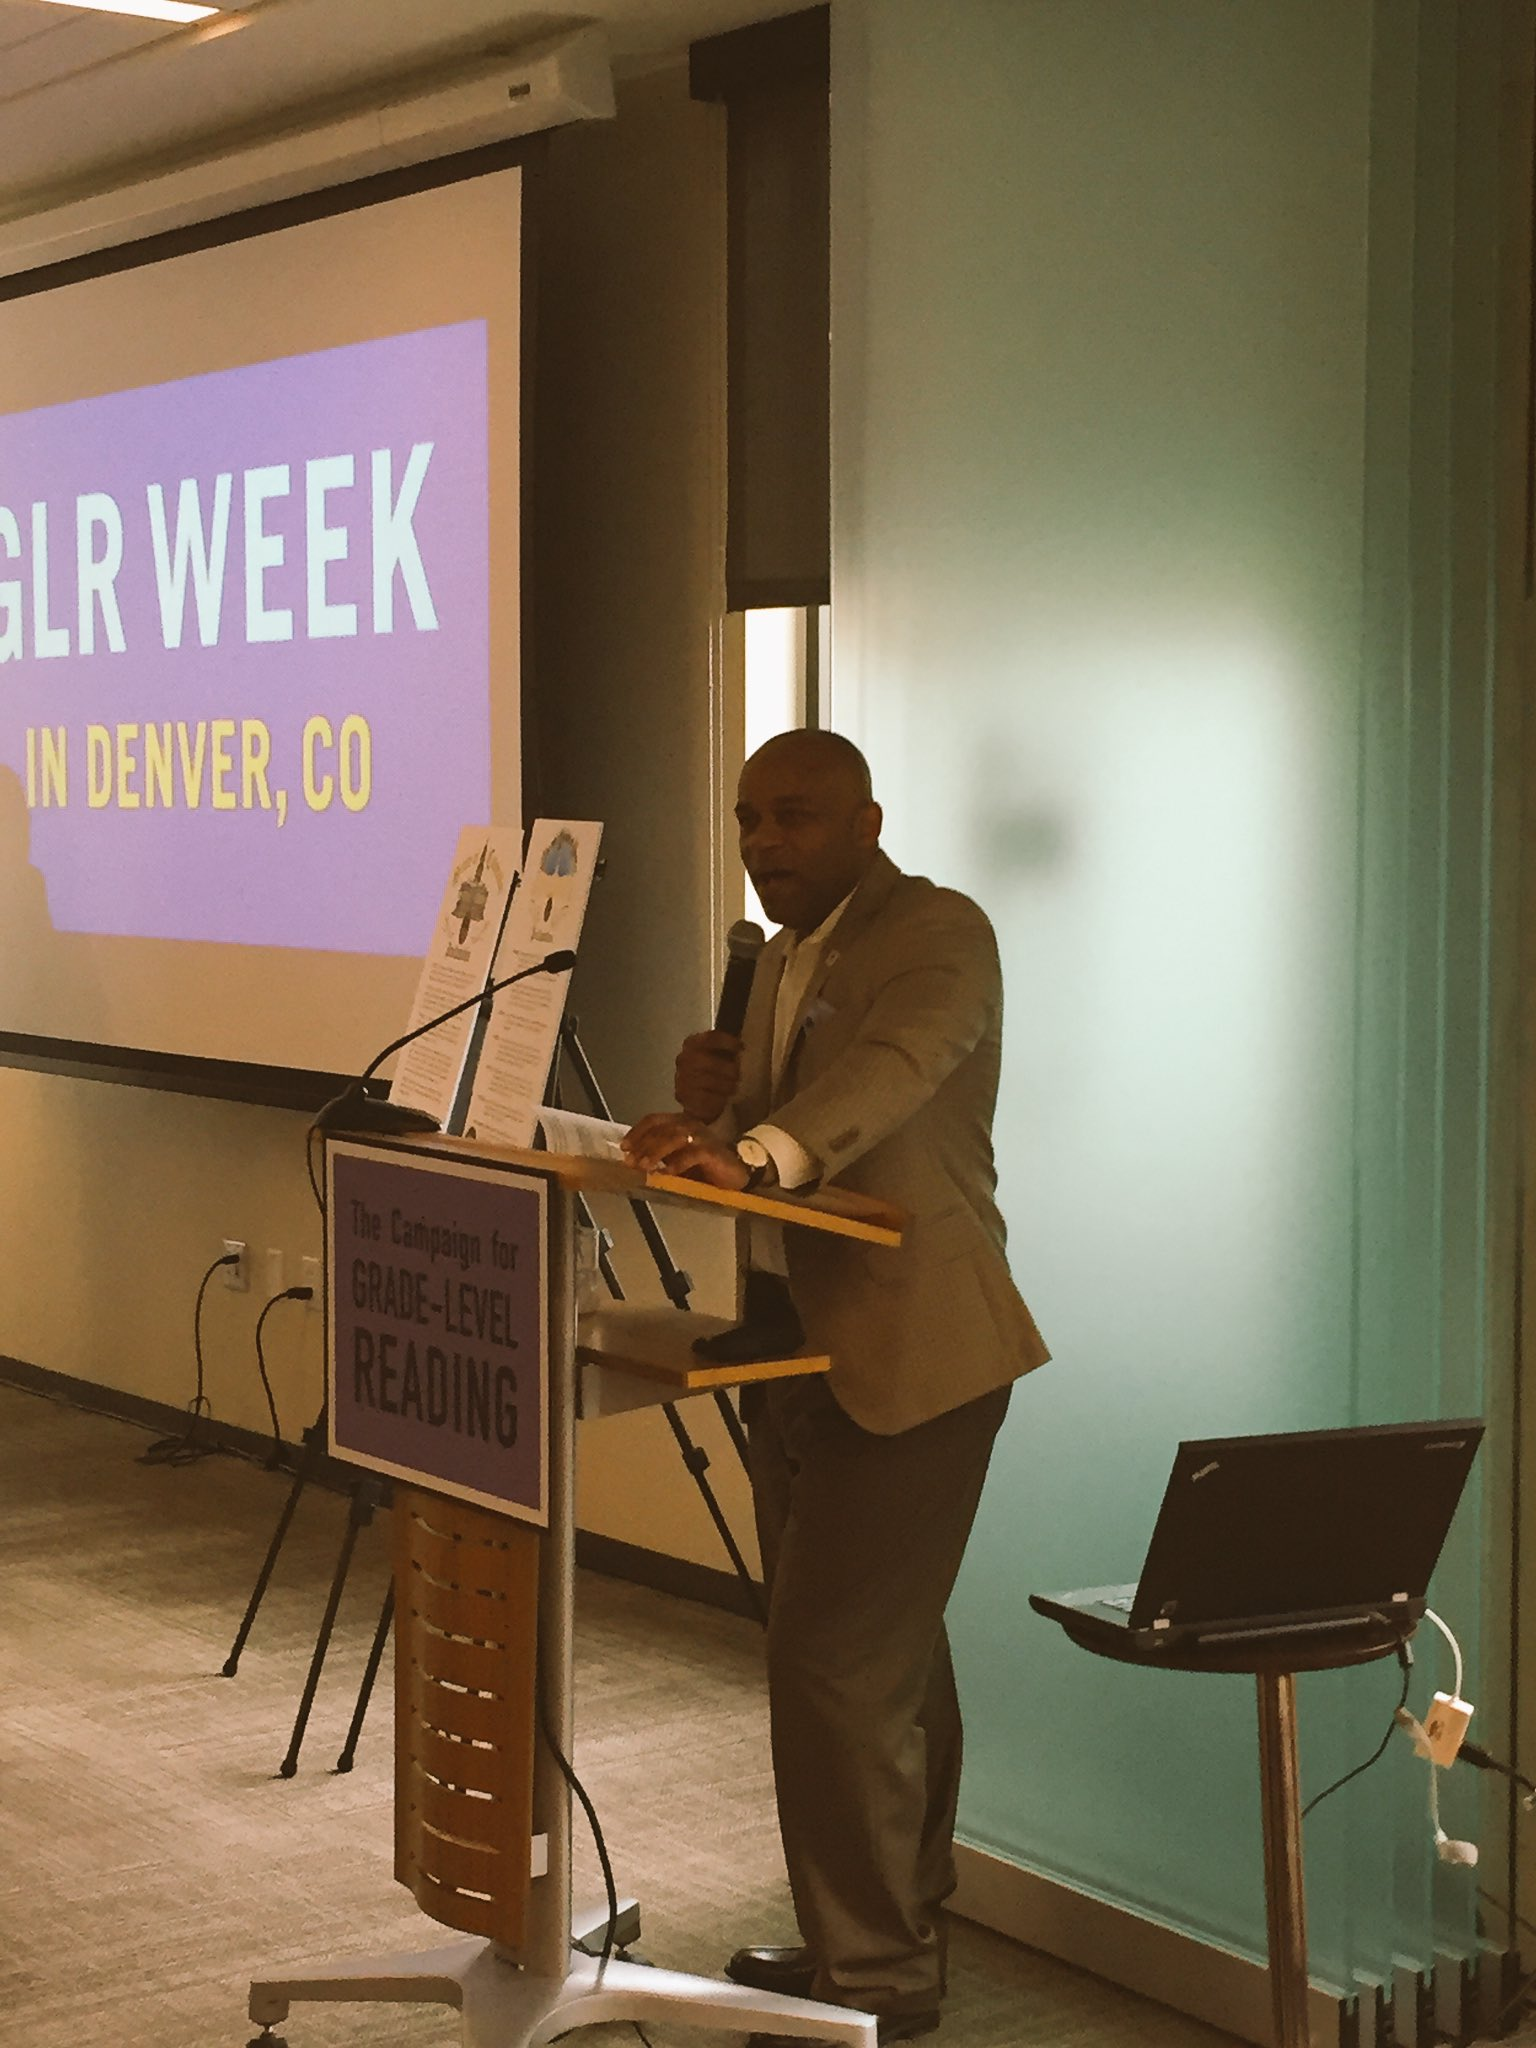 Regardless of what neighborhood a child comes from, they deserve the right to enter school ready to learn. - @MayorHancock #GLRWeek https://t.co/w1UcRy66lQ